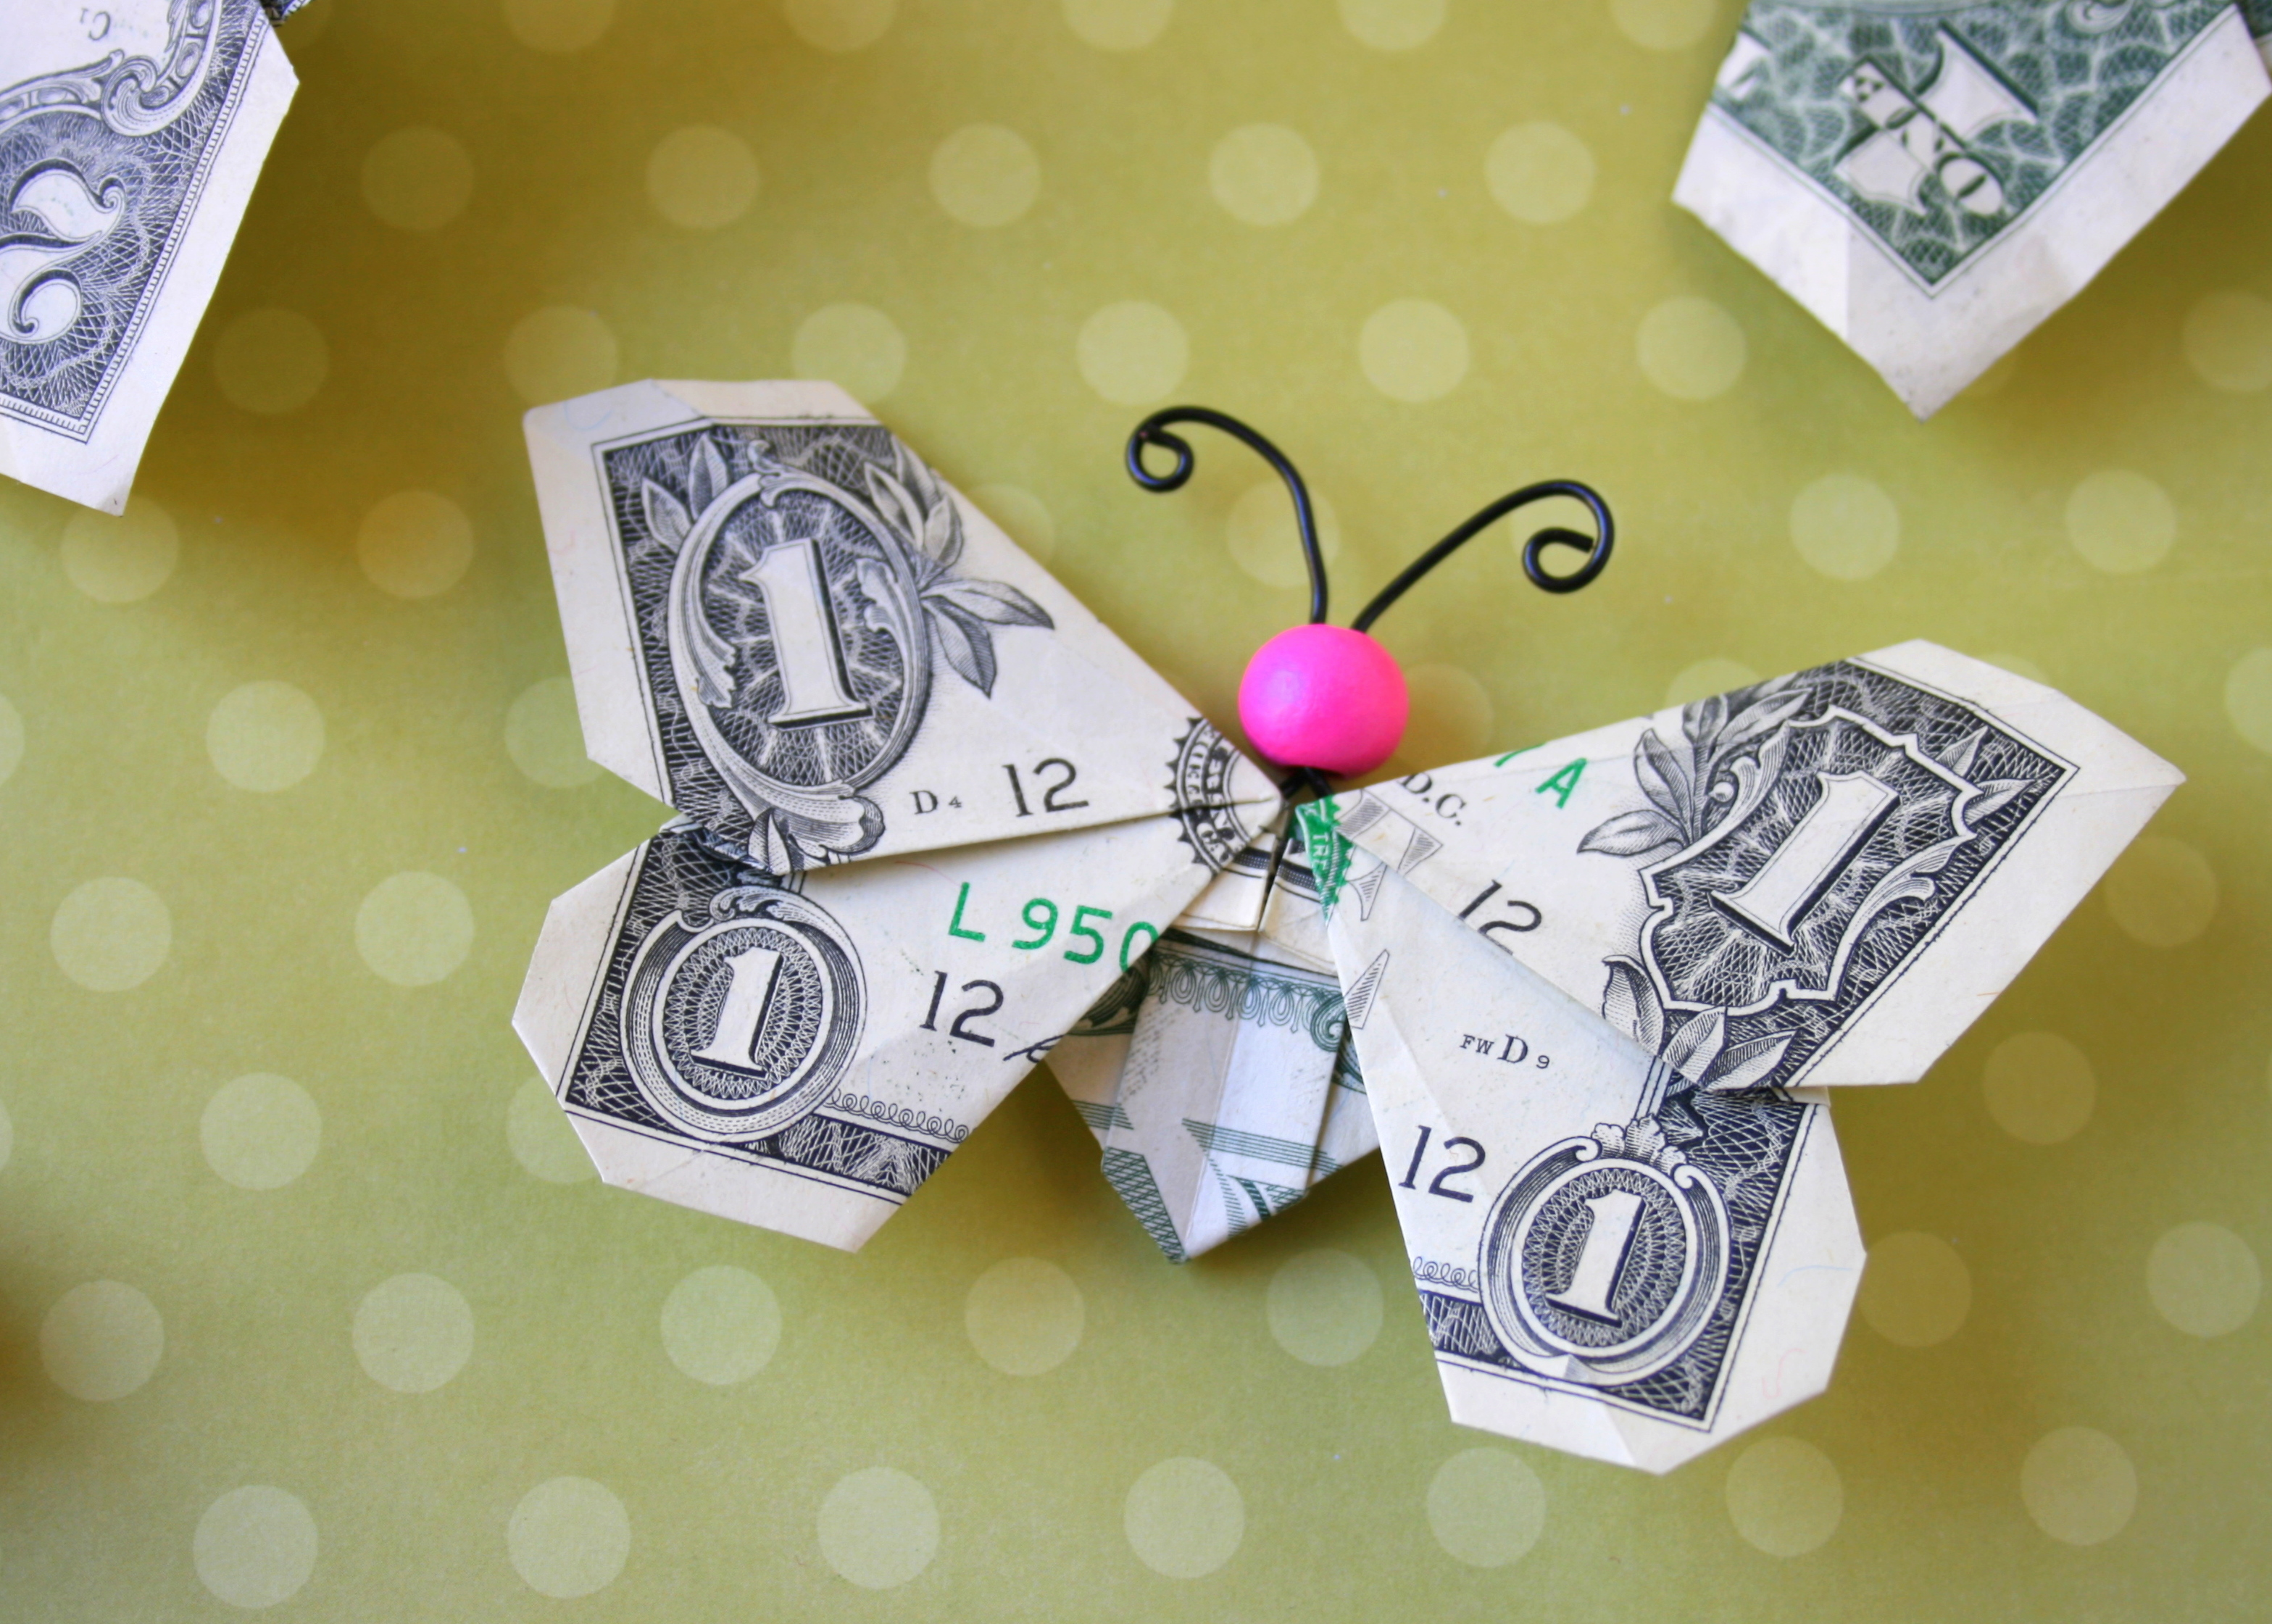 Butterfly Money | Flickr - Photo Sharing! - photo#17